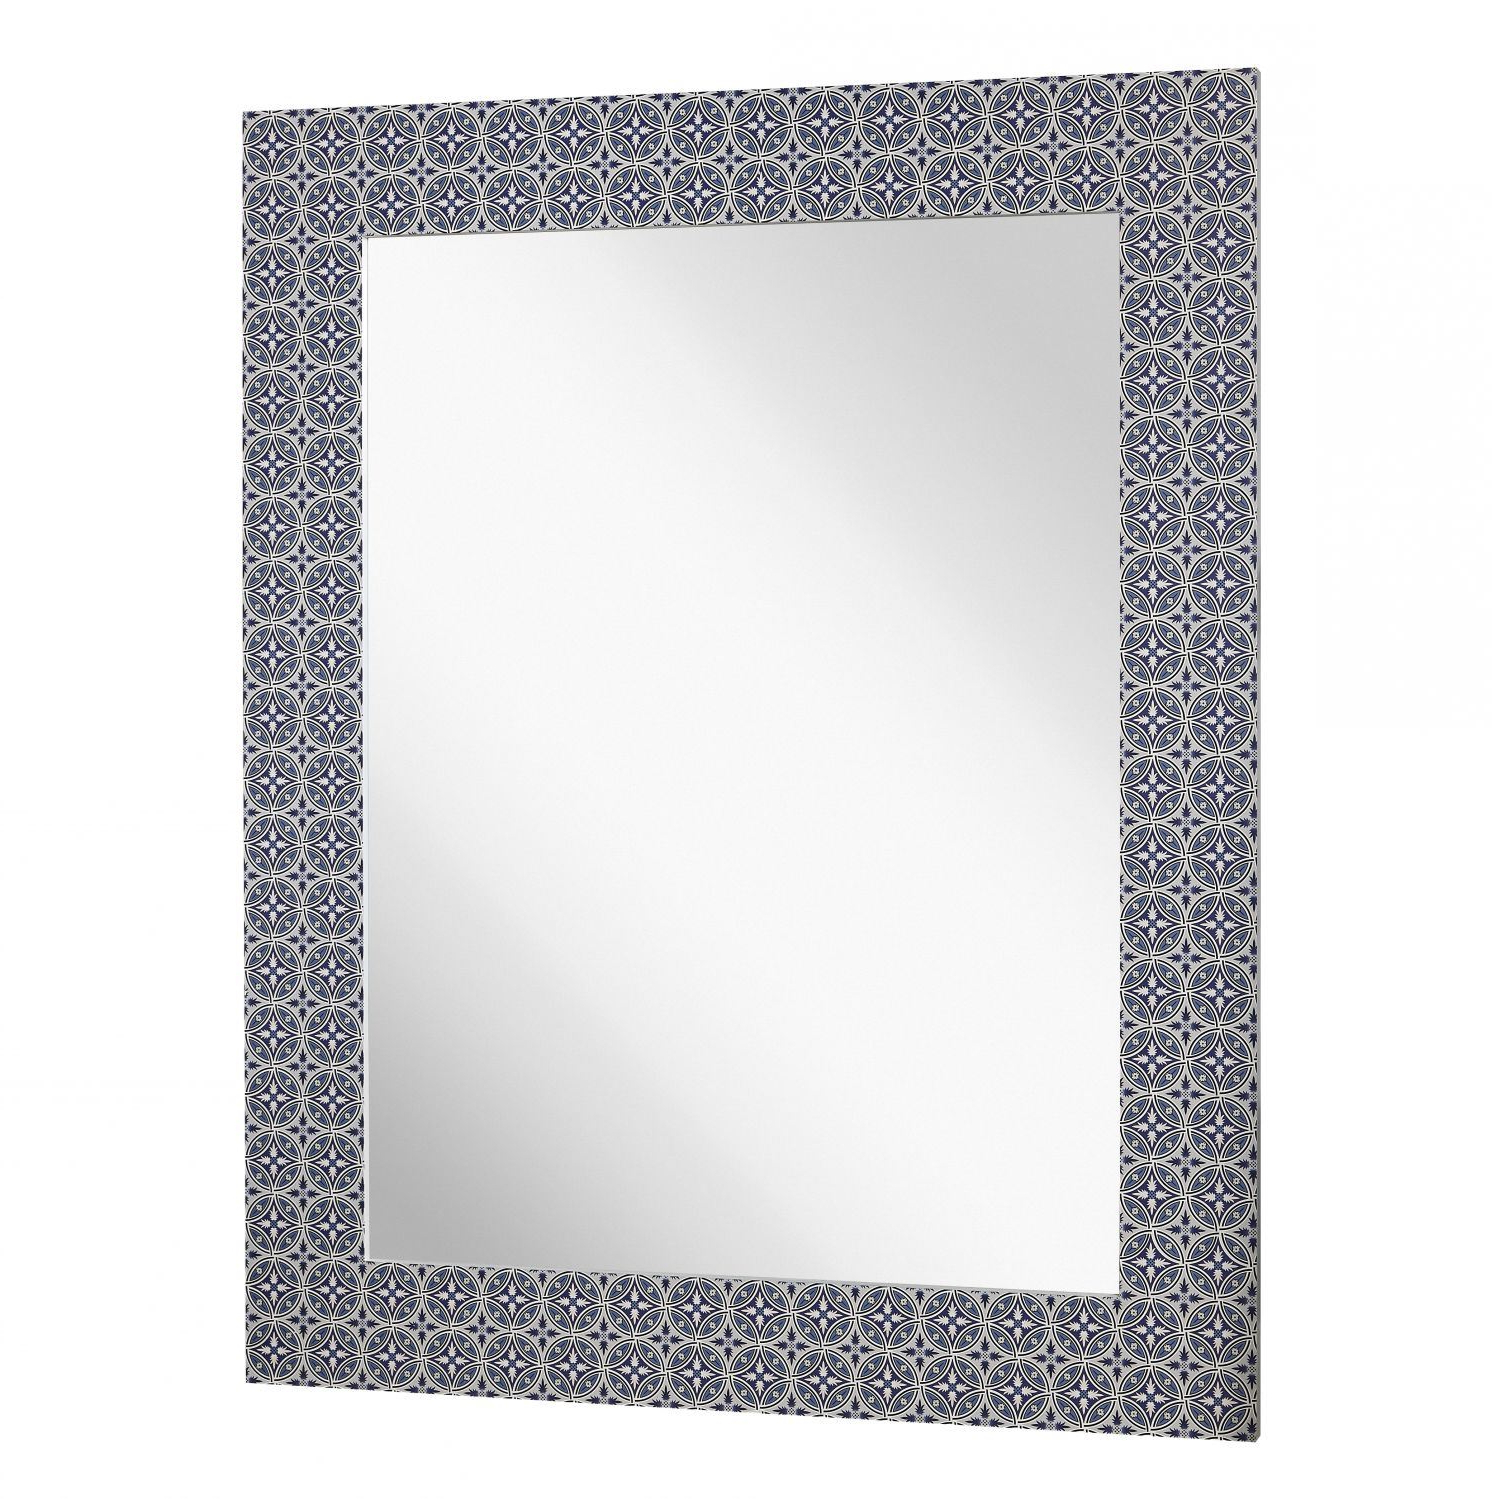 Blue Wall Mirrors Pertaining To Most Current Blue Pattern Wall Mirror (View 20 of 20)